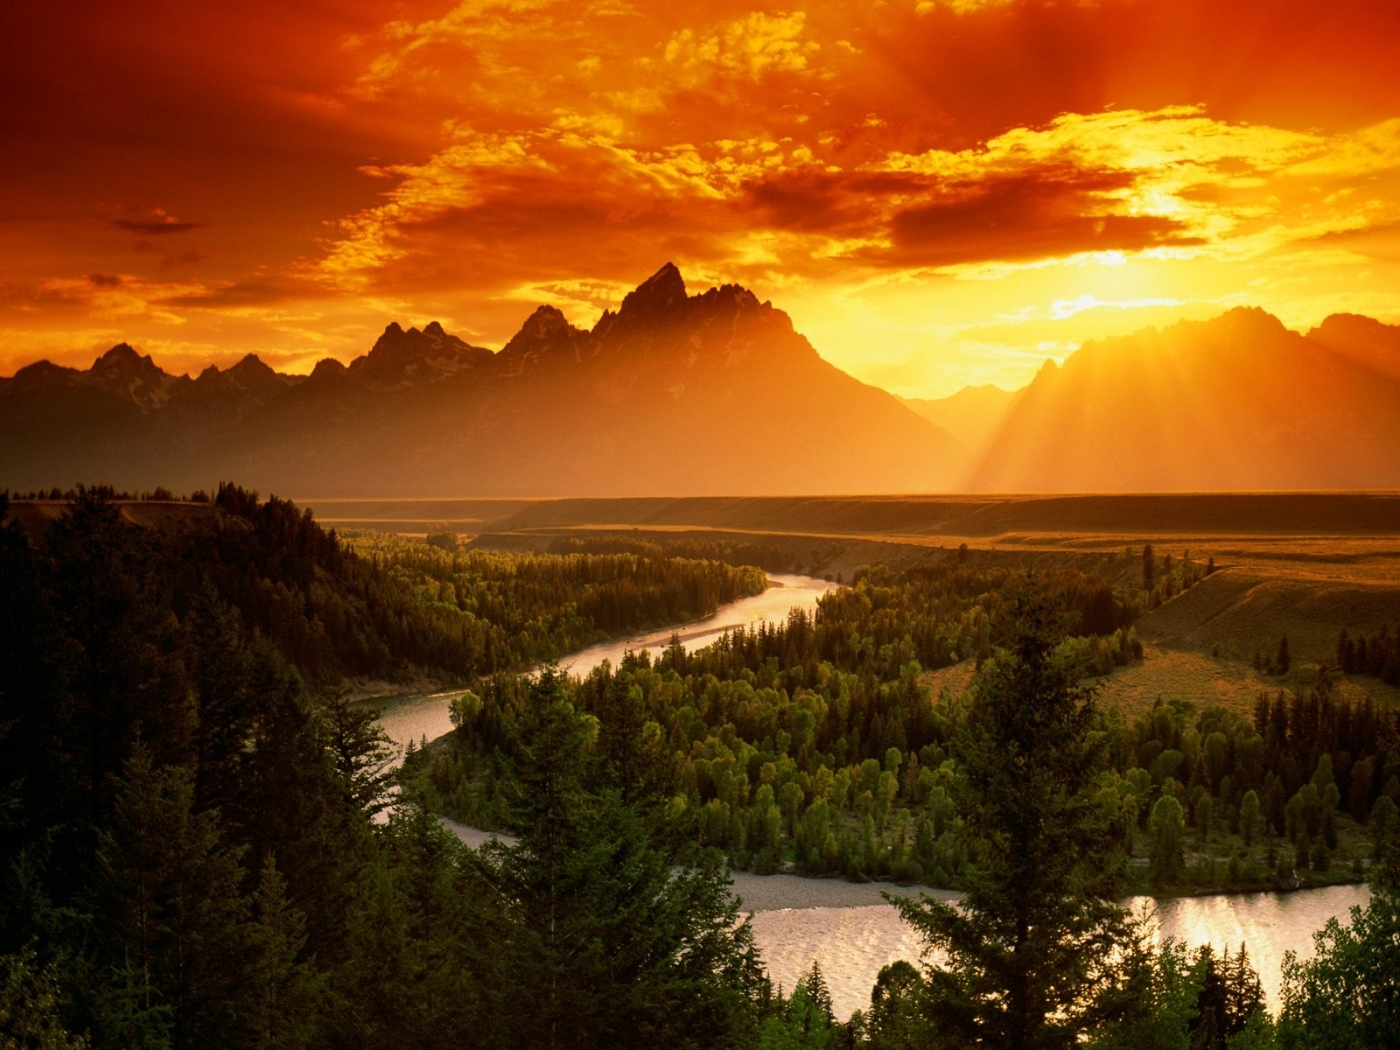 45827 download wallpaper Landscape, Nature, Sunset, Mountains screensavers and pictures for free